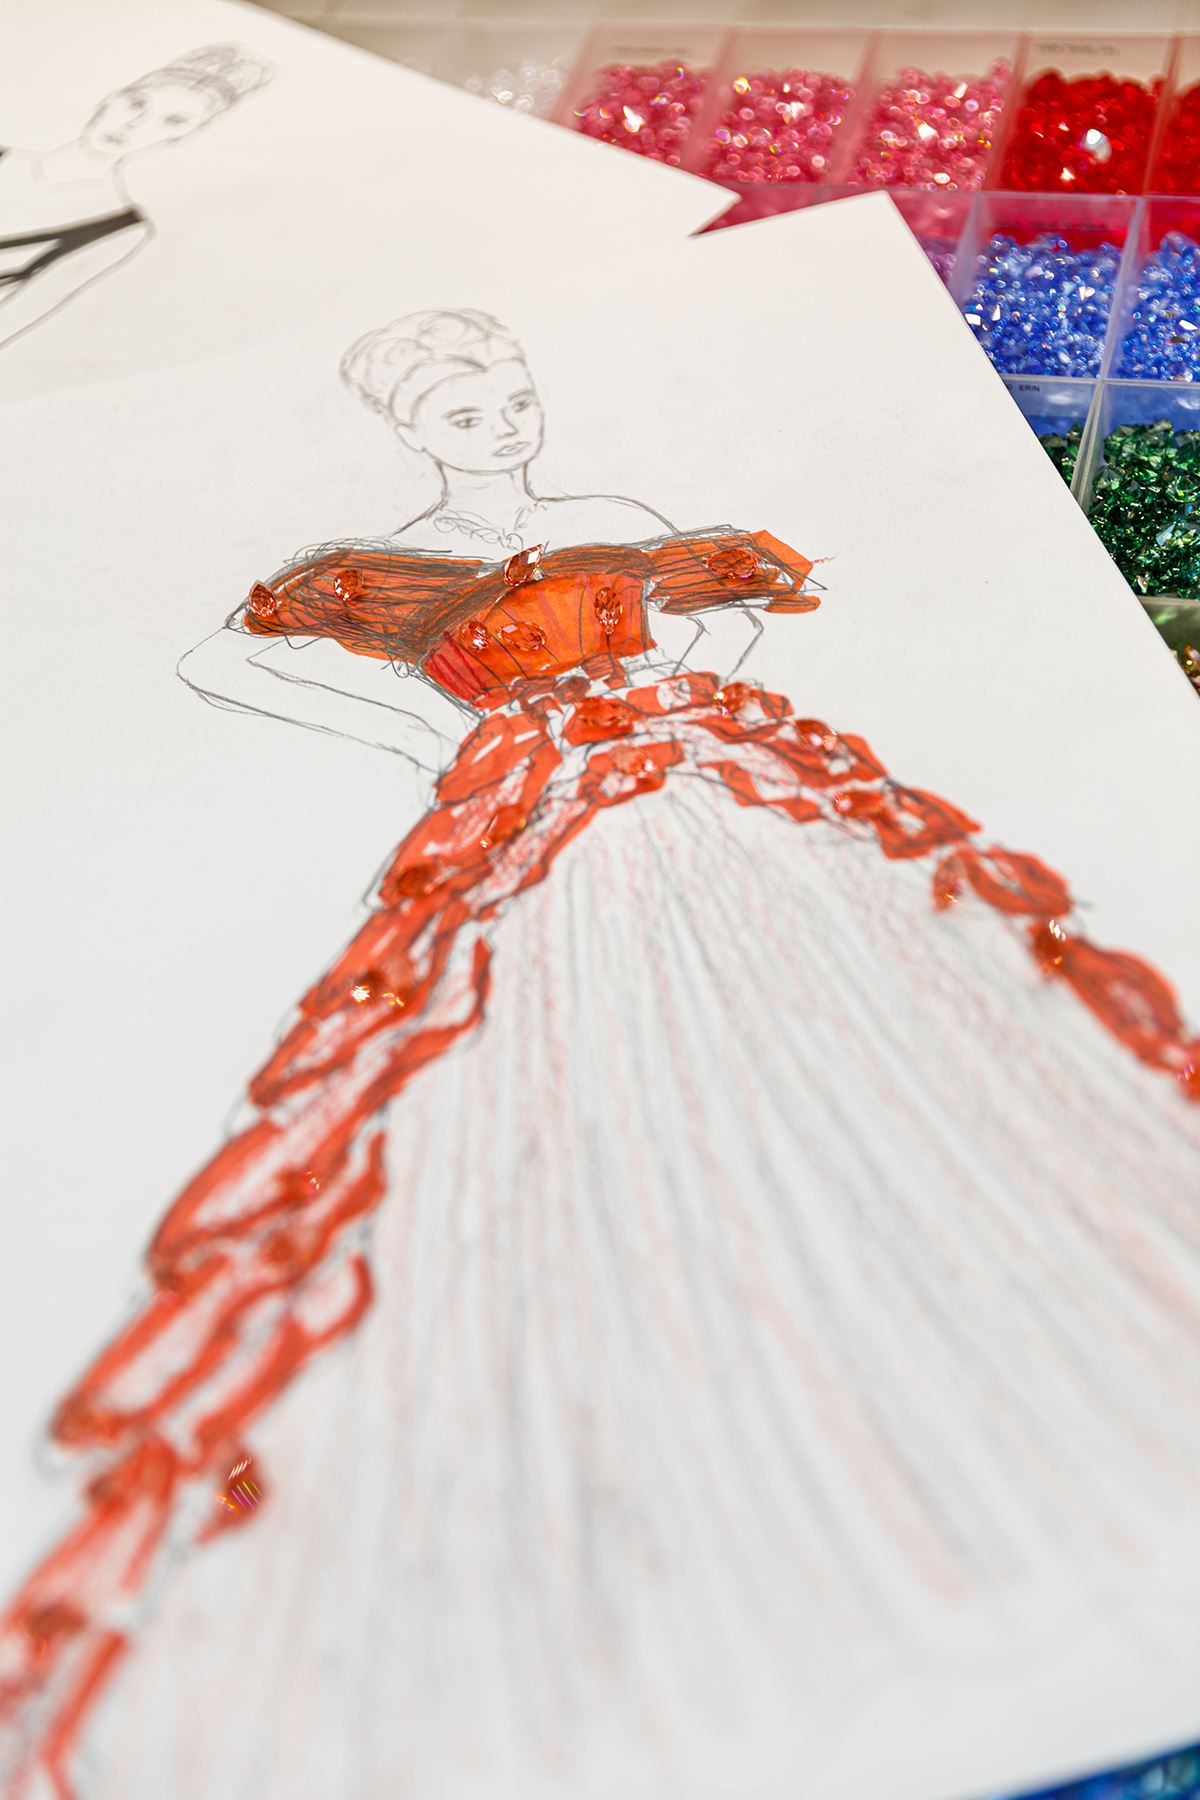 Artistic sketch of costume dress